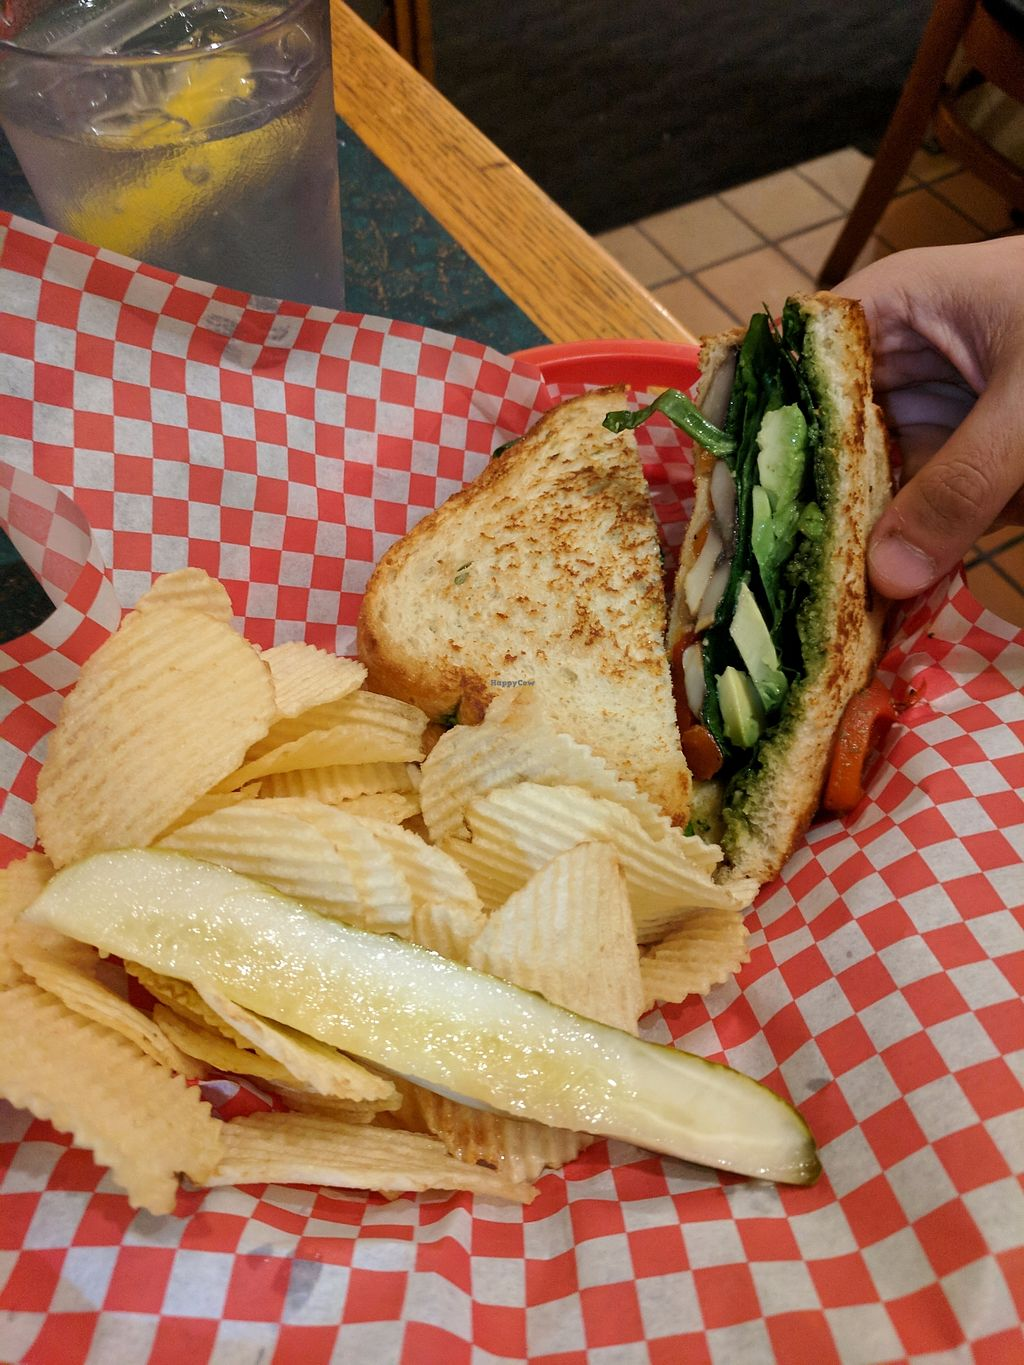 """Photo of The Stew Pot  by <a href=""""/members/profile/eee135"""">eee135</a> <br/>Portobello mushroom panini <br/> September 10, 2017  - <a href='/contact/abuse/image/100575/302783'>Report</a>"""